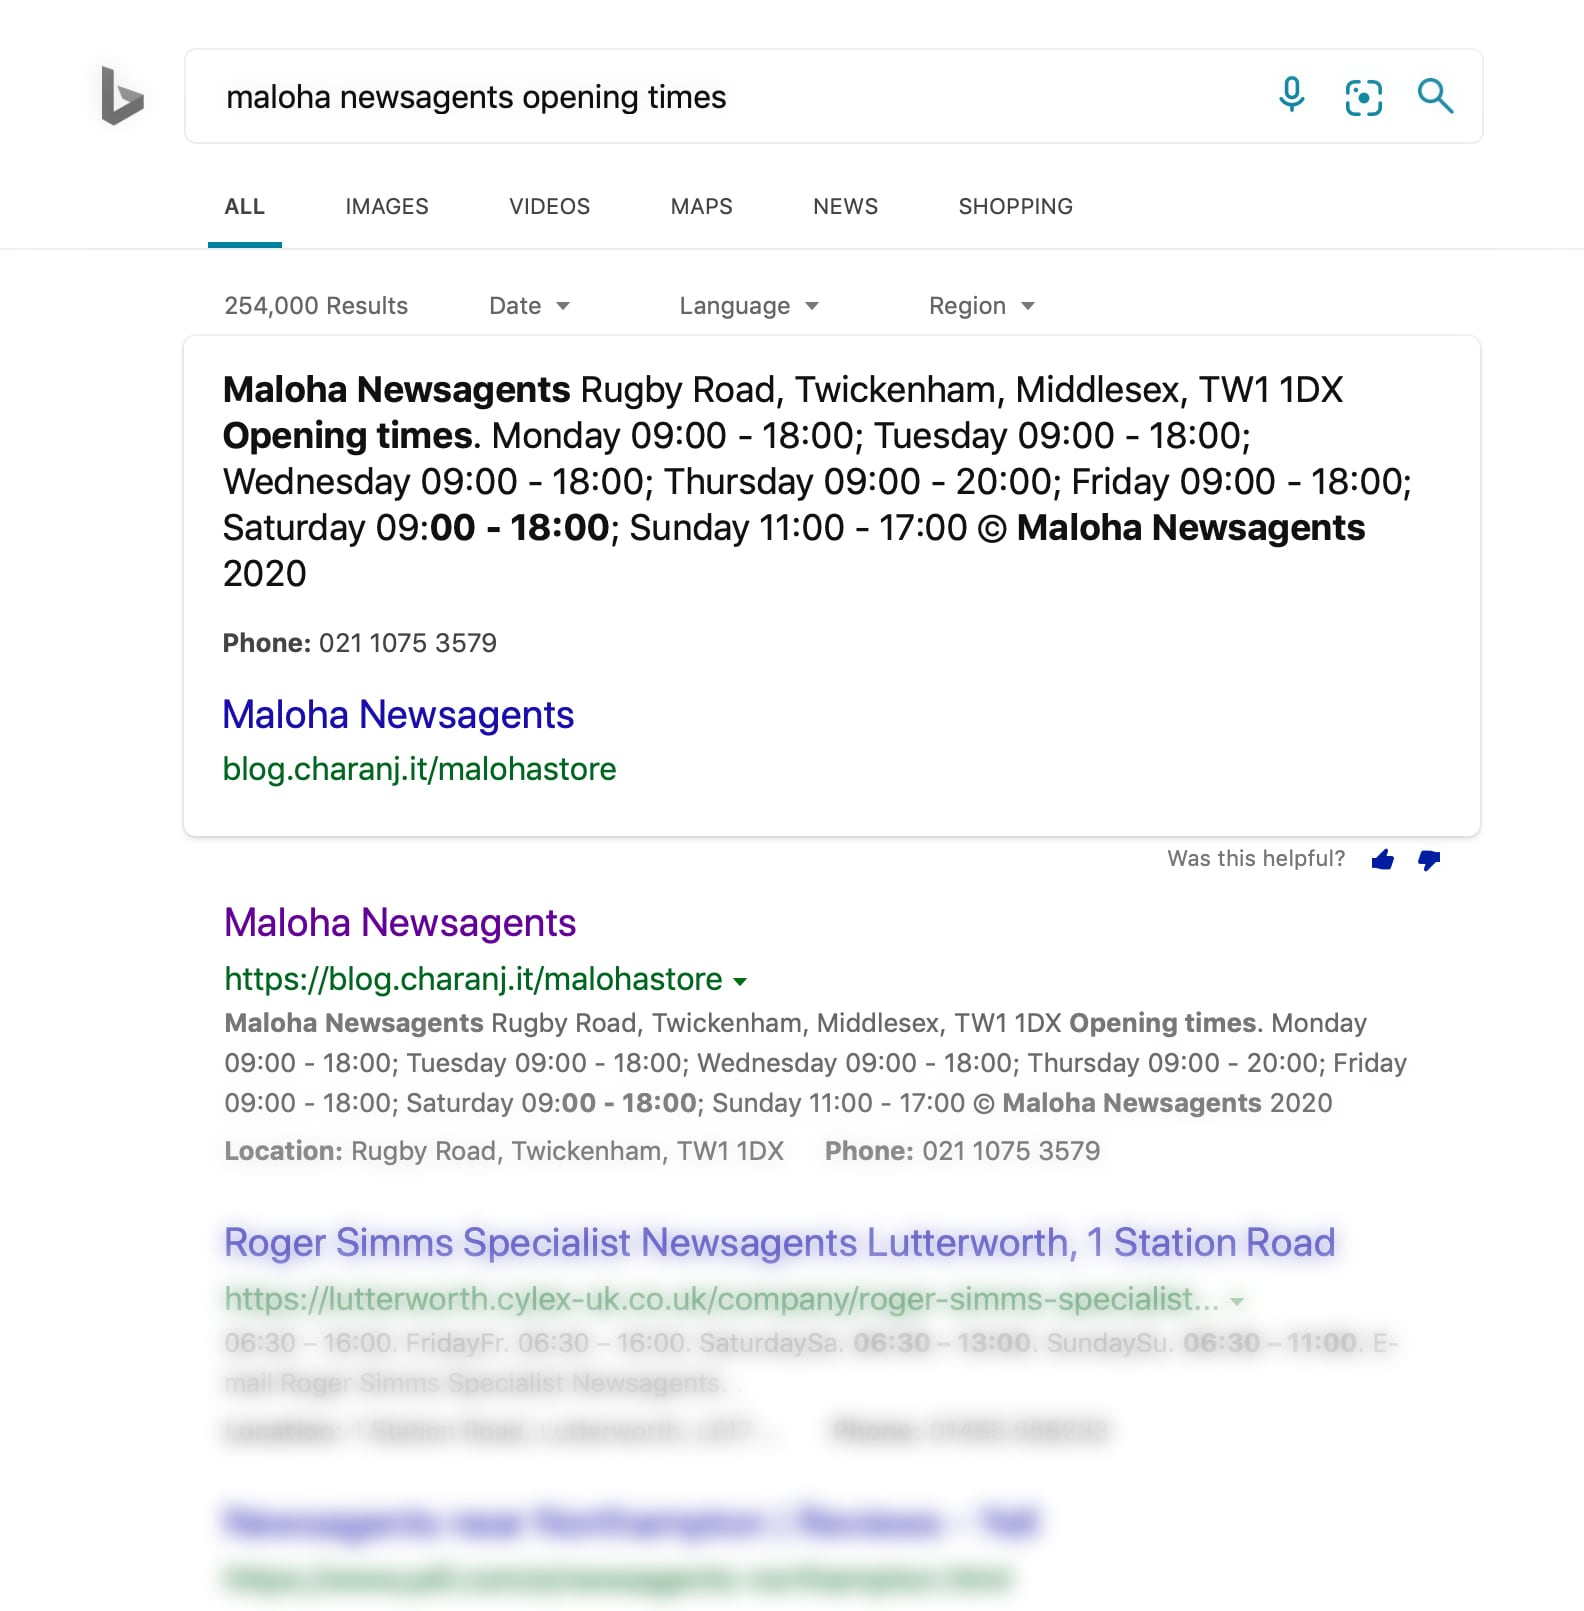 Bing desktop search results